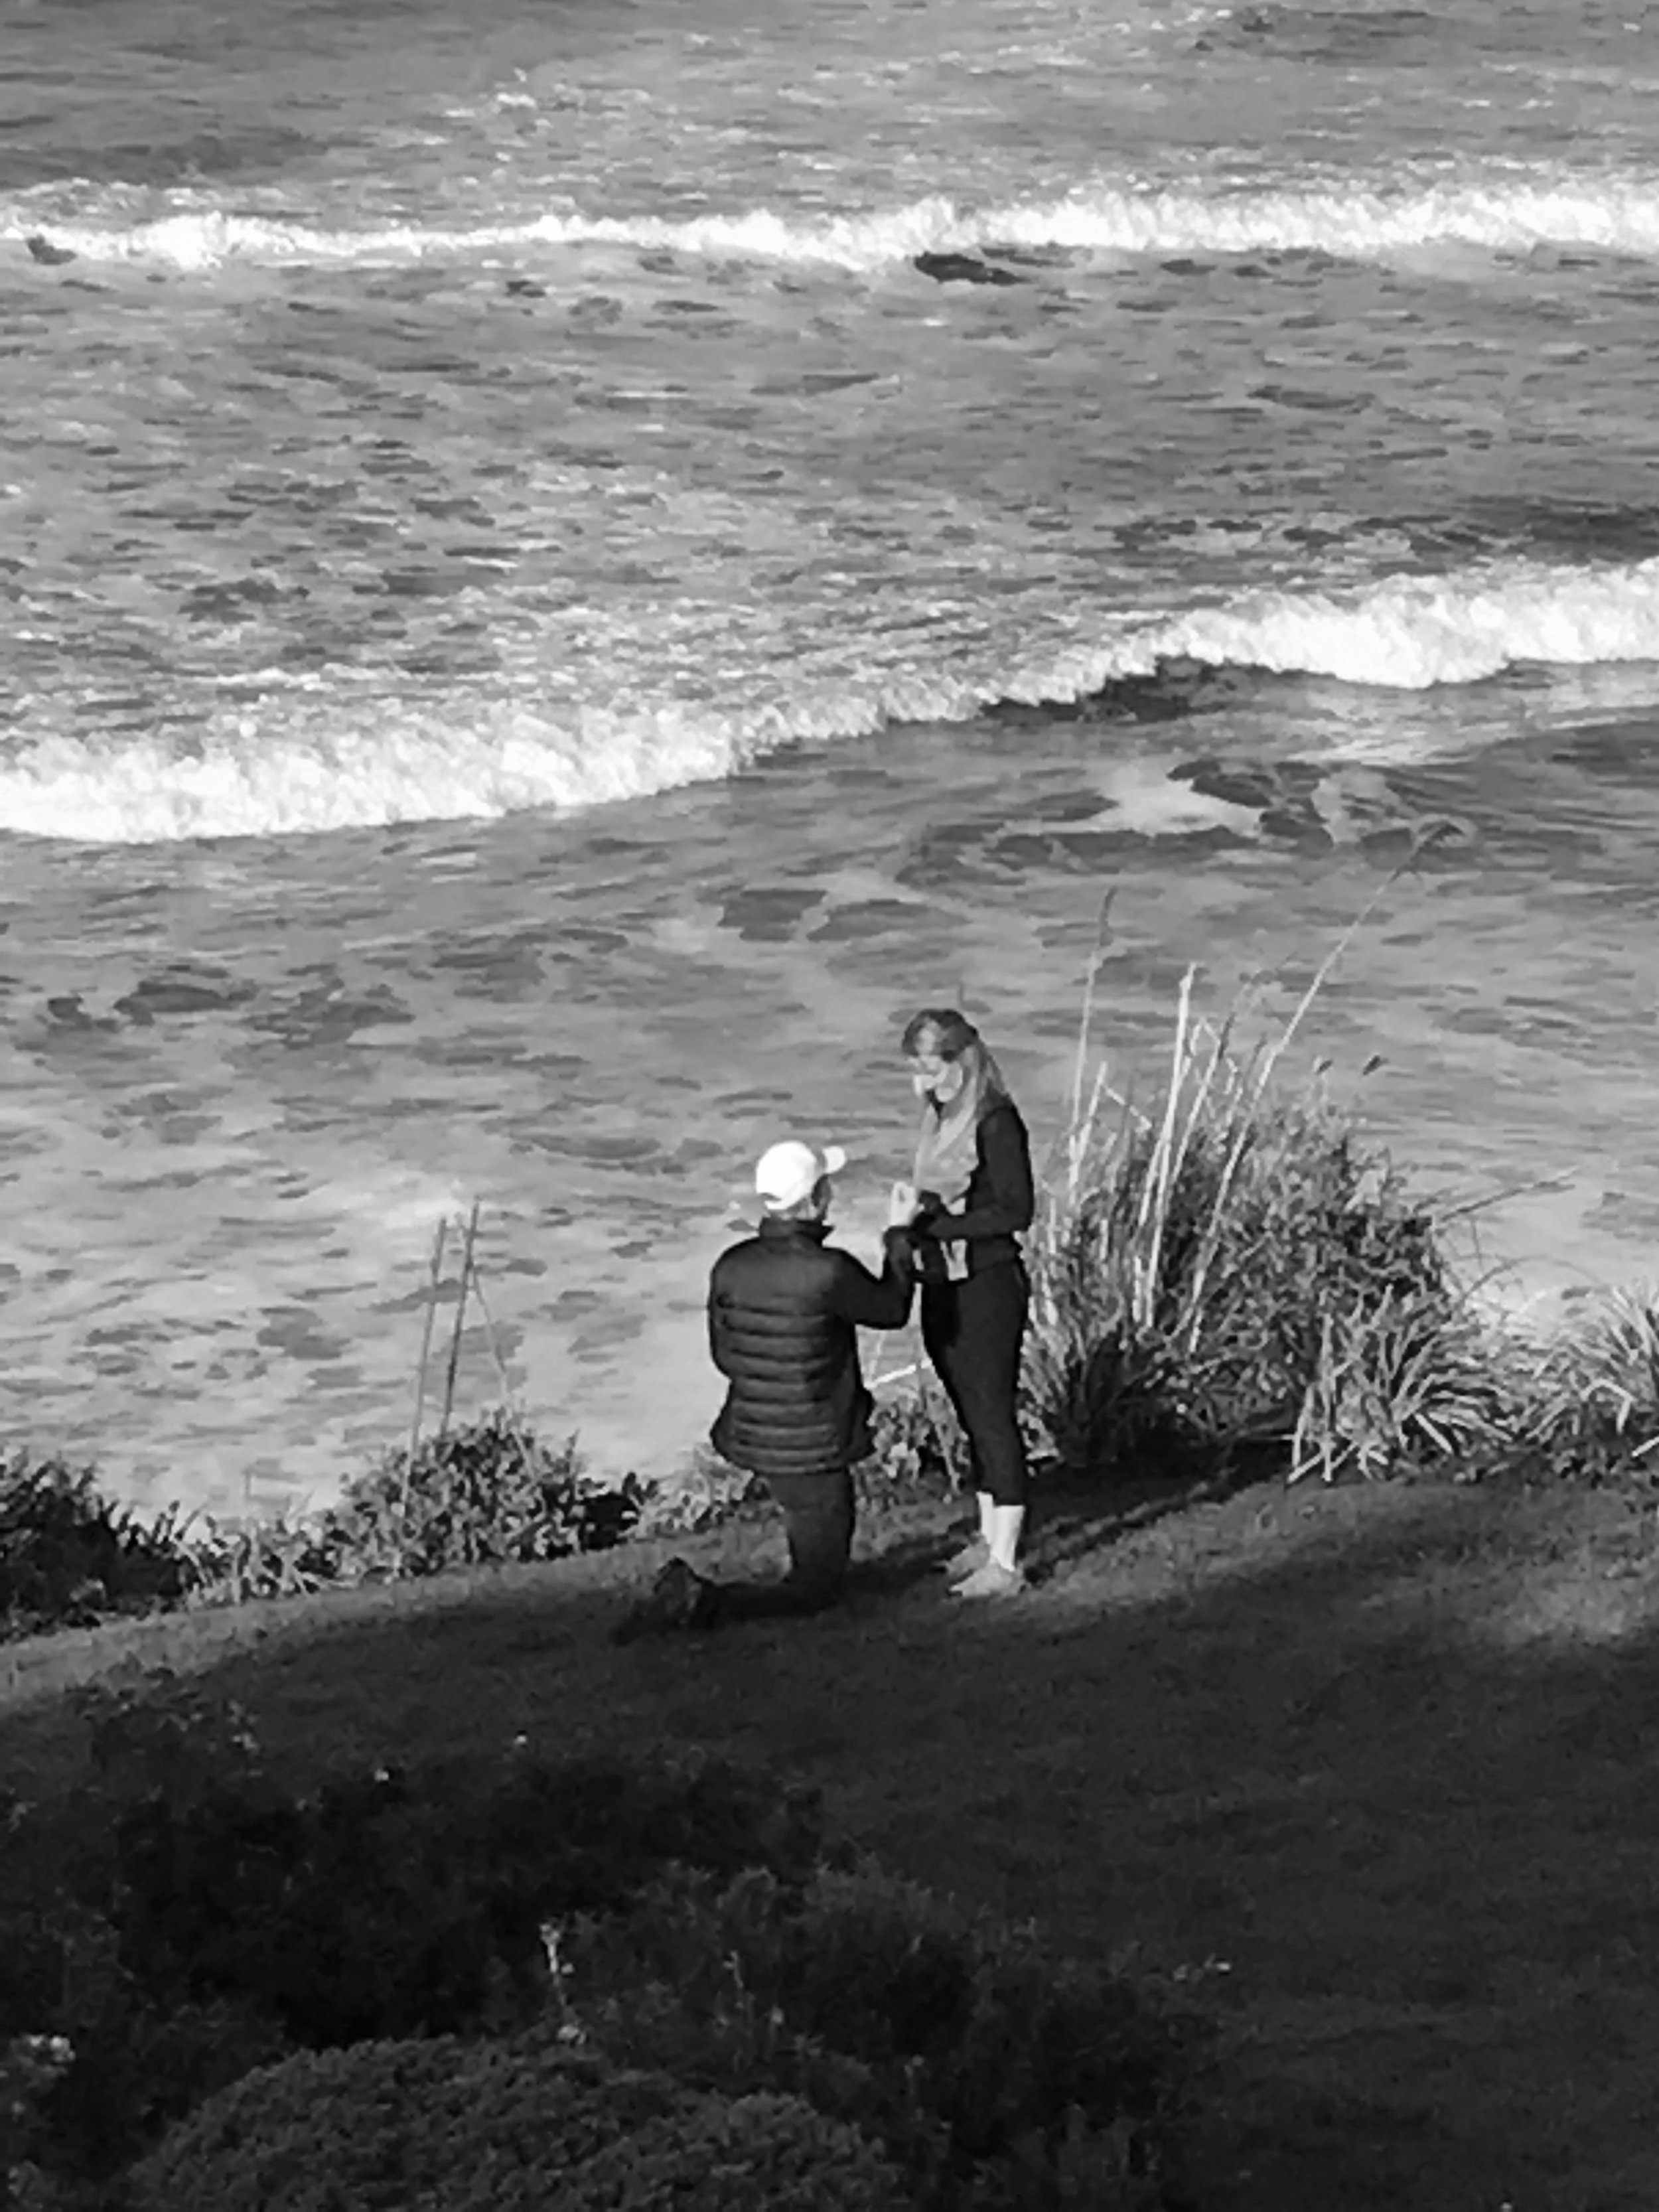 THE PROPOSAL - We were visiting family and friends in Arche Cape, Oregon for Thanksgiving, staying at a beautiful house on the ocean. He wanted to create that perfect moment on the beach.Unfortunately, the weather had other plans. One of the last mornings the skies finally cleared and he insisted we take our coffee outside. Standing on the edge of the bluff, in the first bit of sunshine we had seen for days, he popped the question.Naturally, I said yes.Champagne and a hike up Neahkahnie Mountain followed.